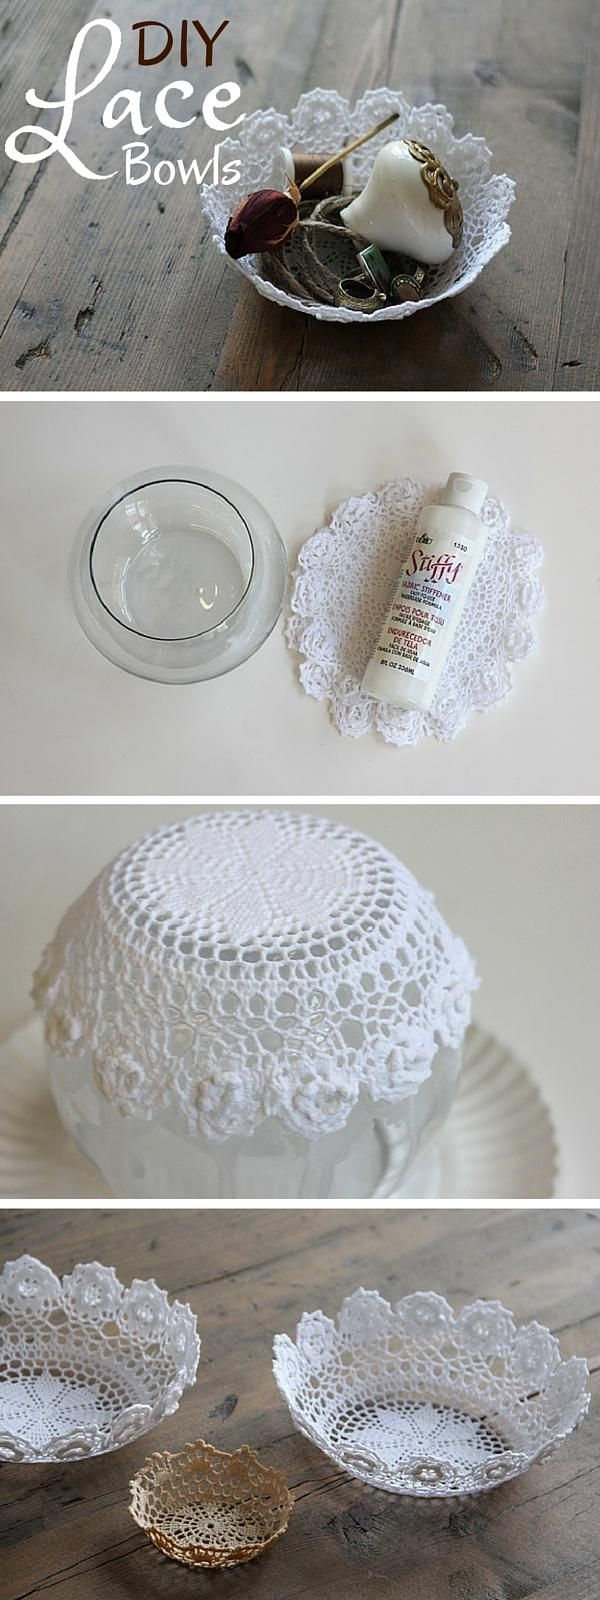 What you need: doilies (I ordered them from this website), fabric stiffener (I found this at A.C. Moore), and a bowl. Choose a bowl that will allow you to drape the doily over the bottom of to create a bowl shape. More info and instructions about this great tutorial you can find in the source url […]